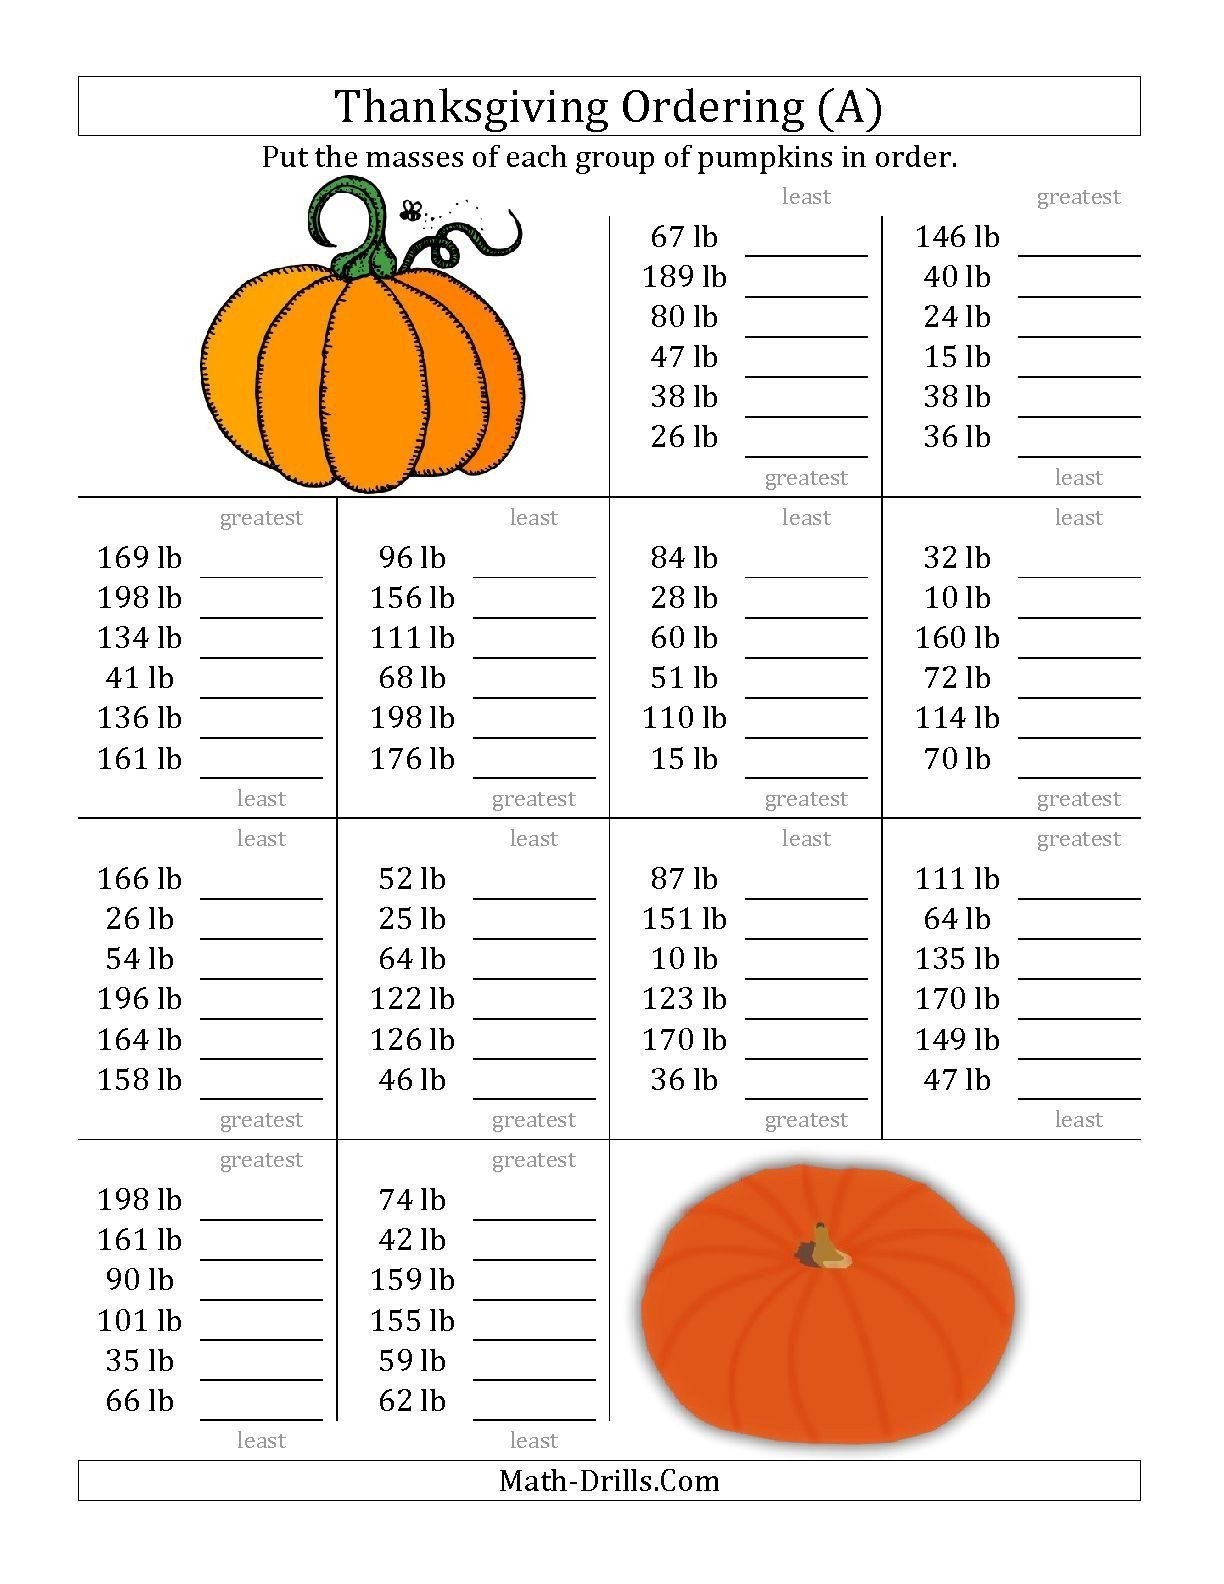 Thanksgiving Math Worksheets Middle School 30 Thanksgiving Math Worksheets Middle School In 2020